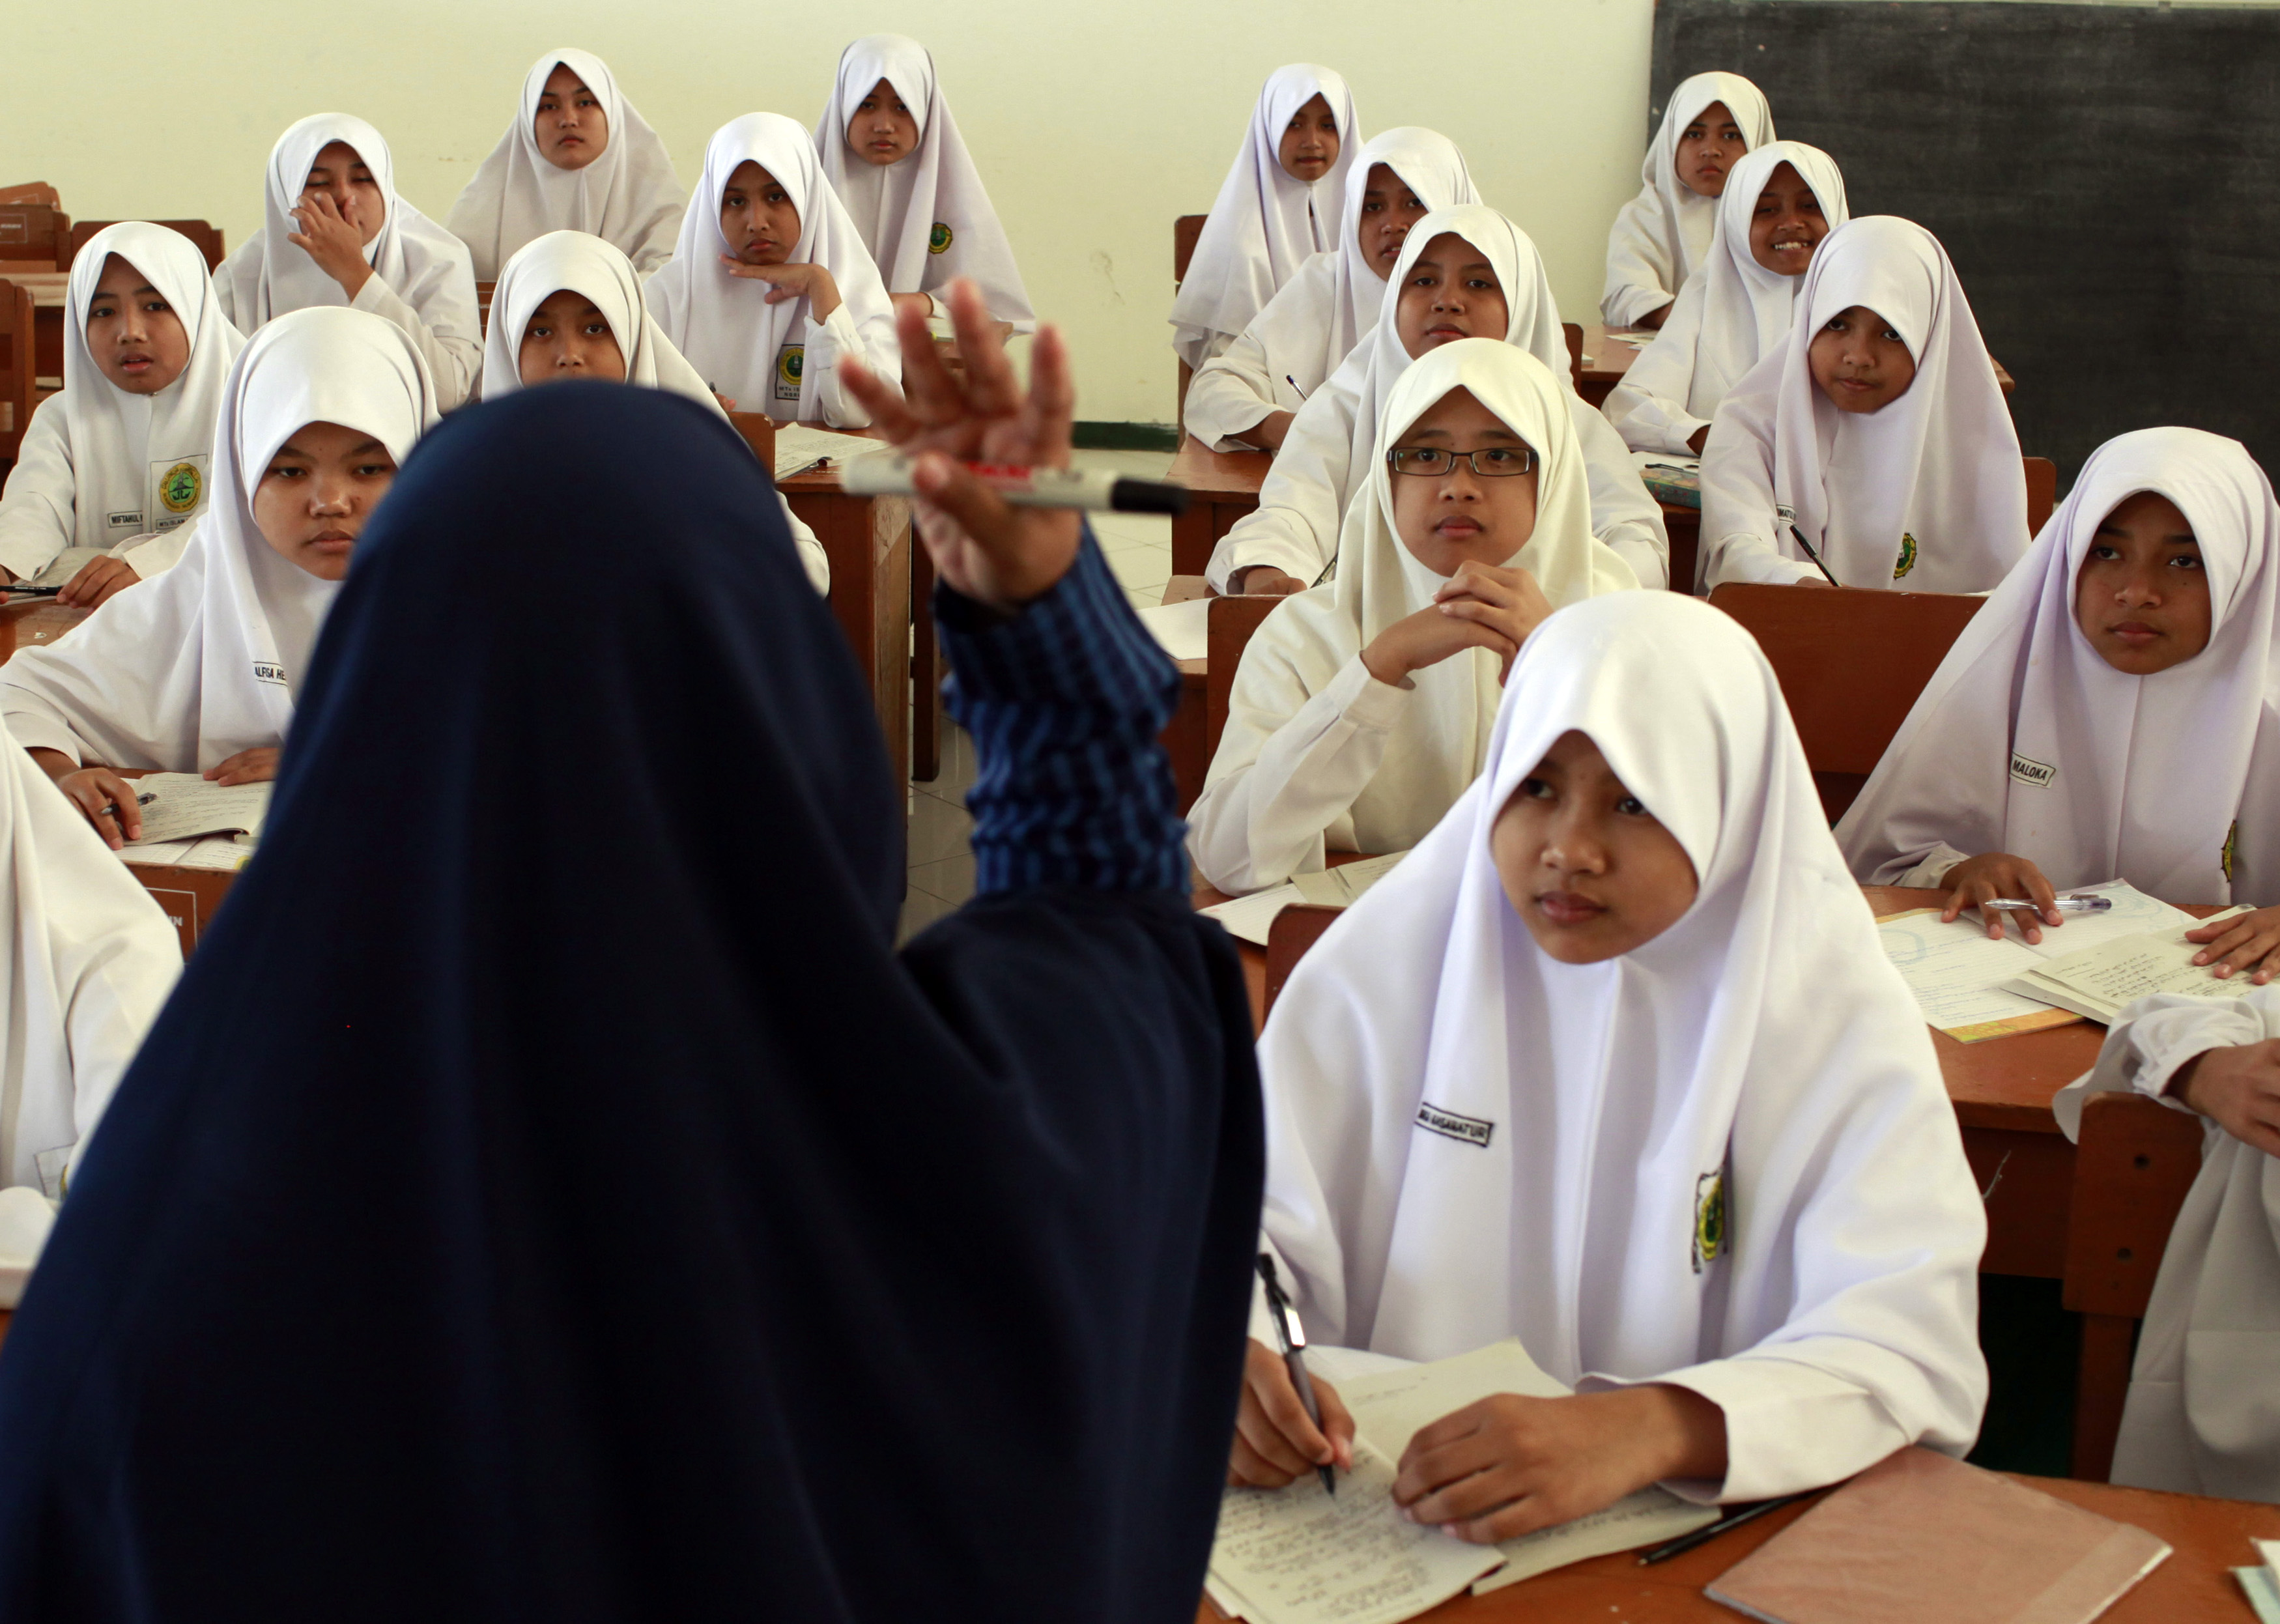 A teacher gestures during an Islam personality class during the holy month of Ramadan at the Al-Mukmin Islamic boarding school in Solo, Indonesia Central Java province, Aug. 2, 2011.